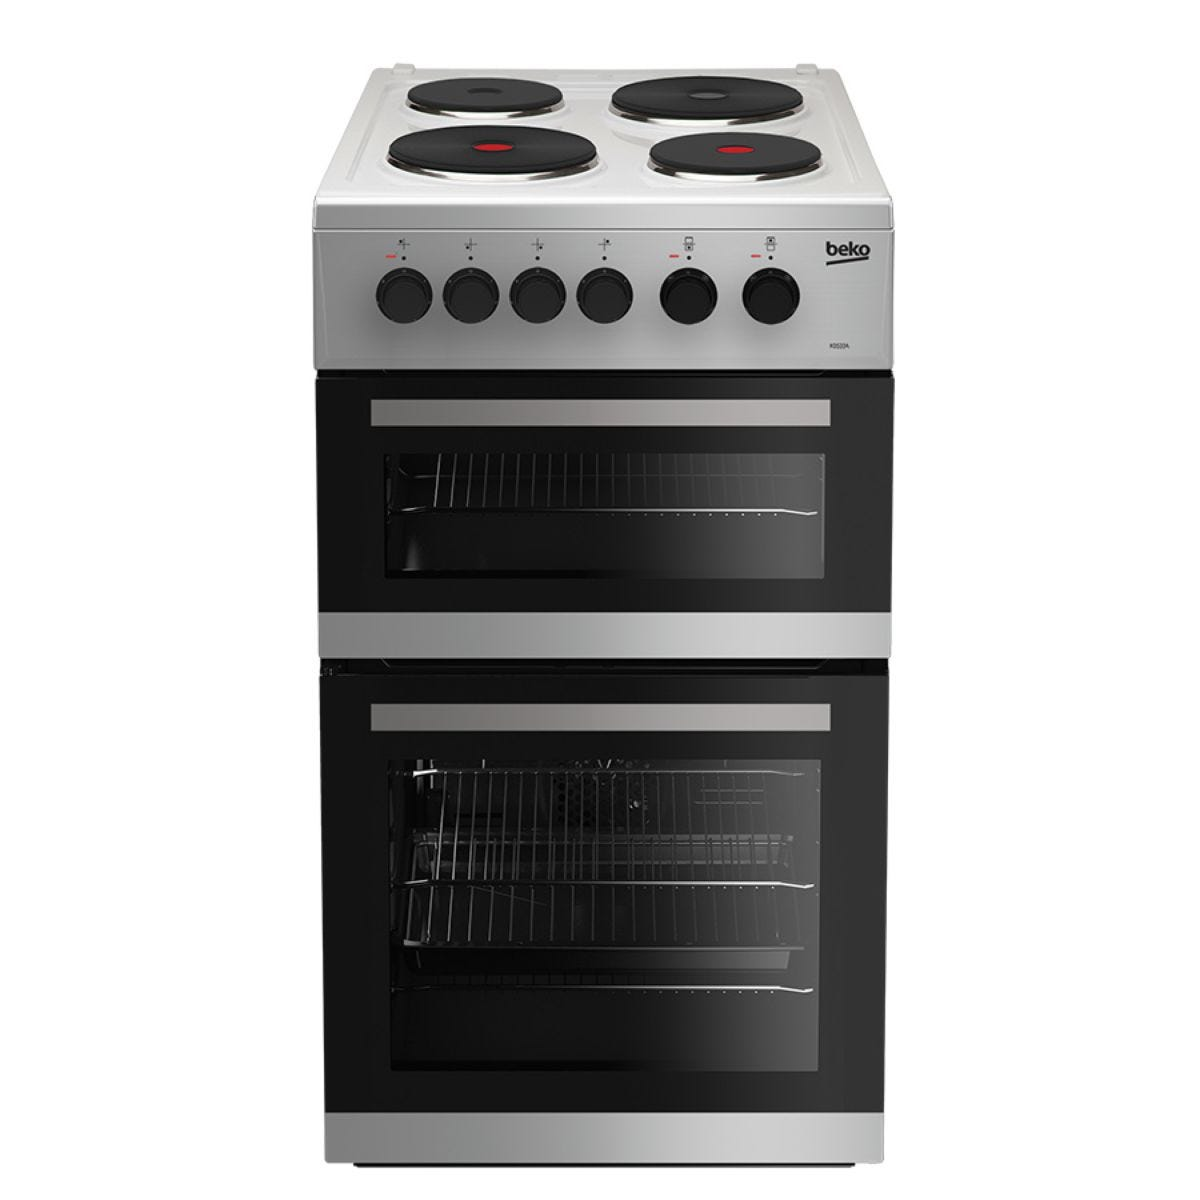 Beko KD533AS Double Oven 91L Electric Cooker - Silver